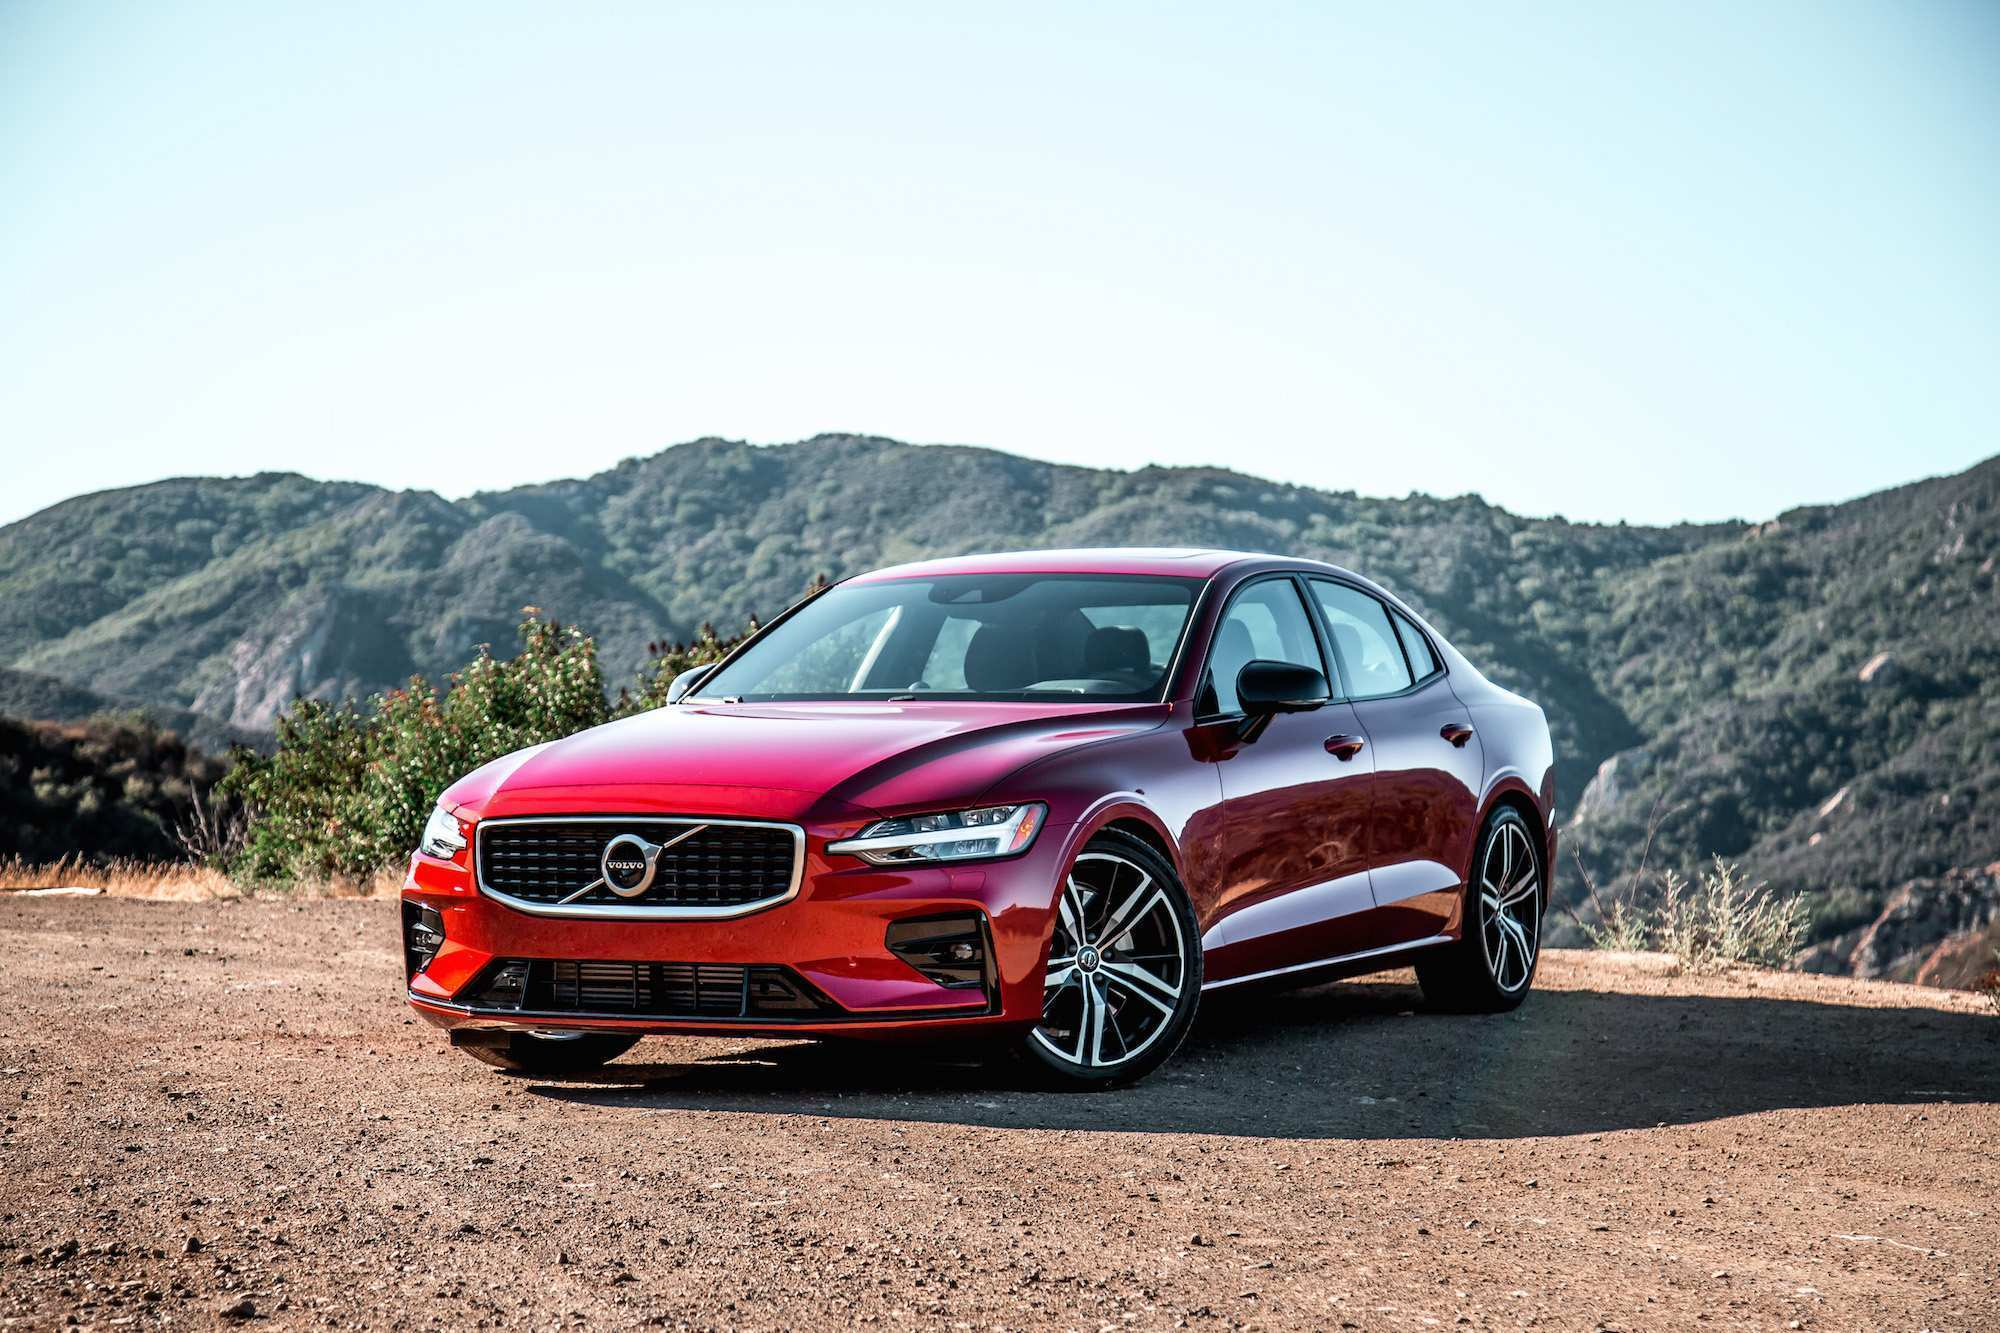 89 Concept of 2020 Volvo S60 R Release Date with 2020 Volvo S60 R